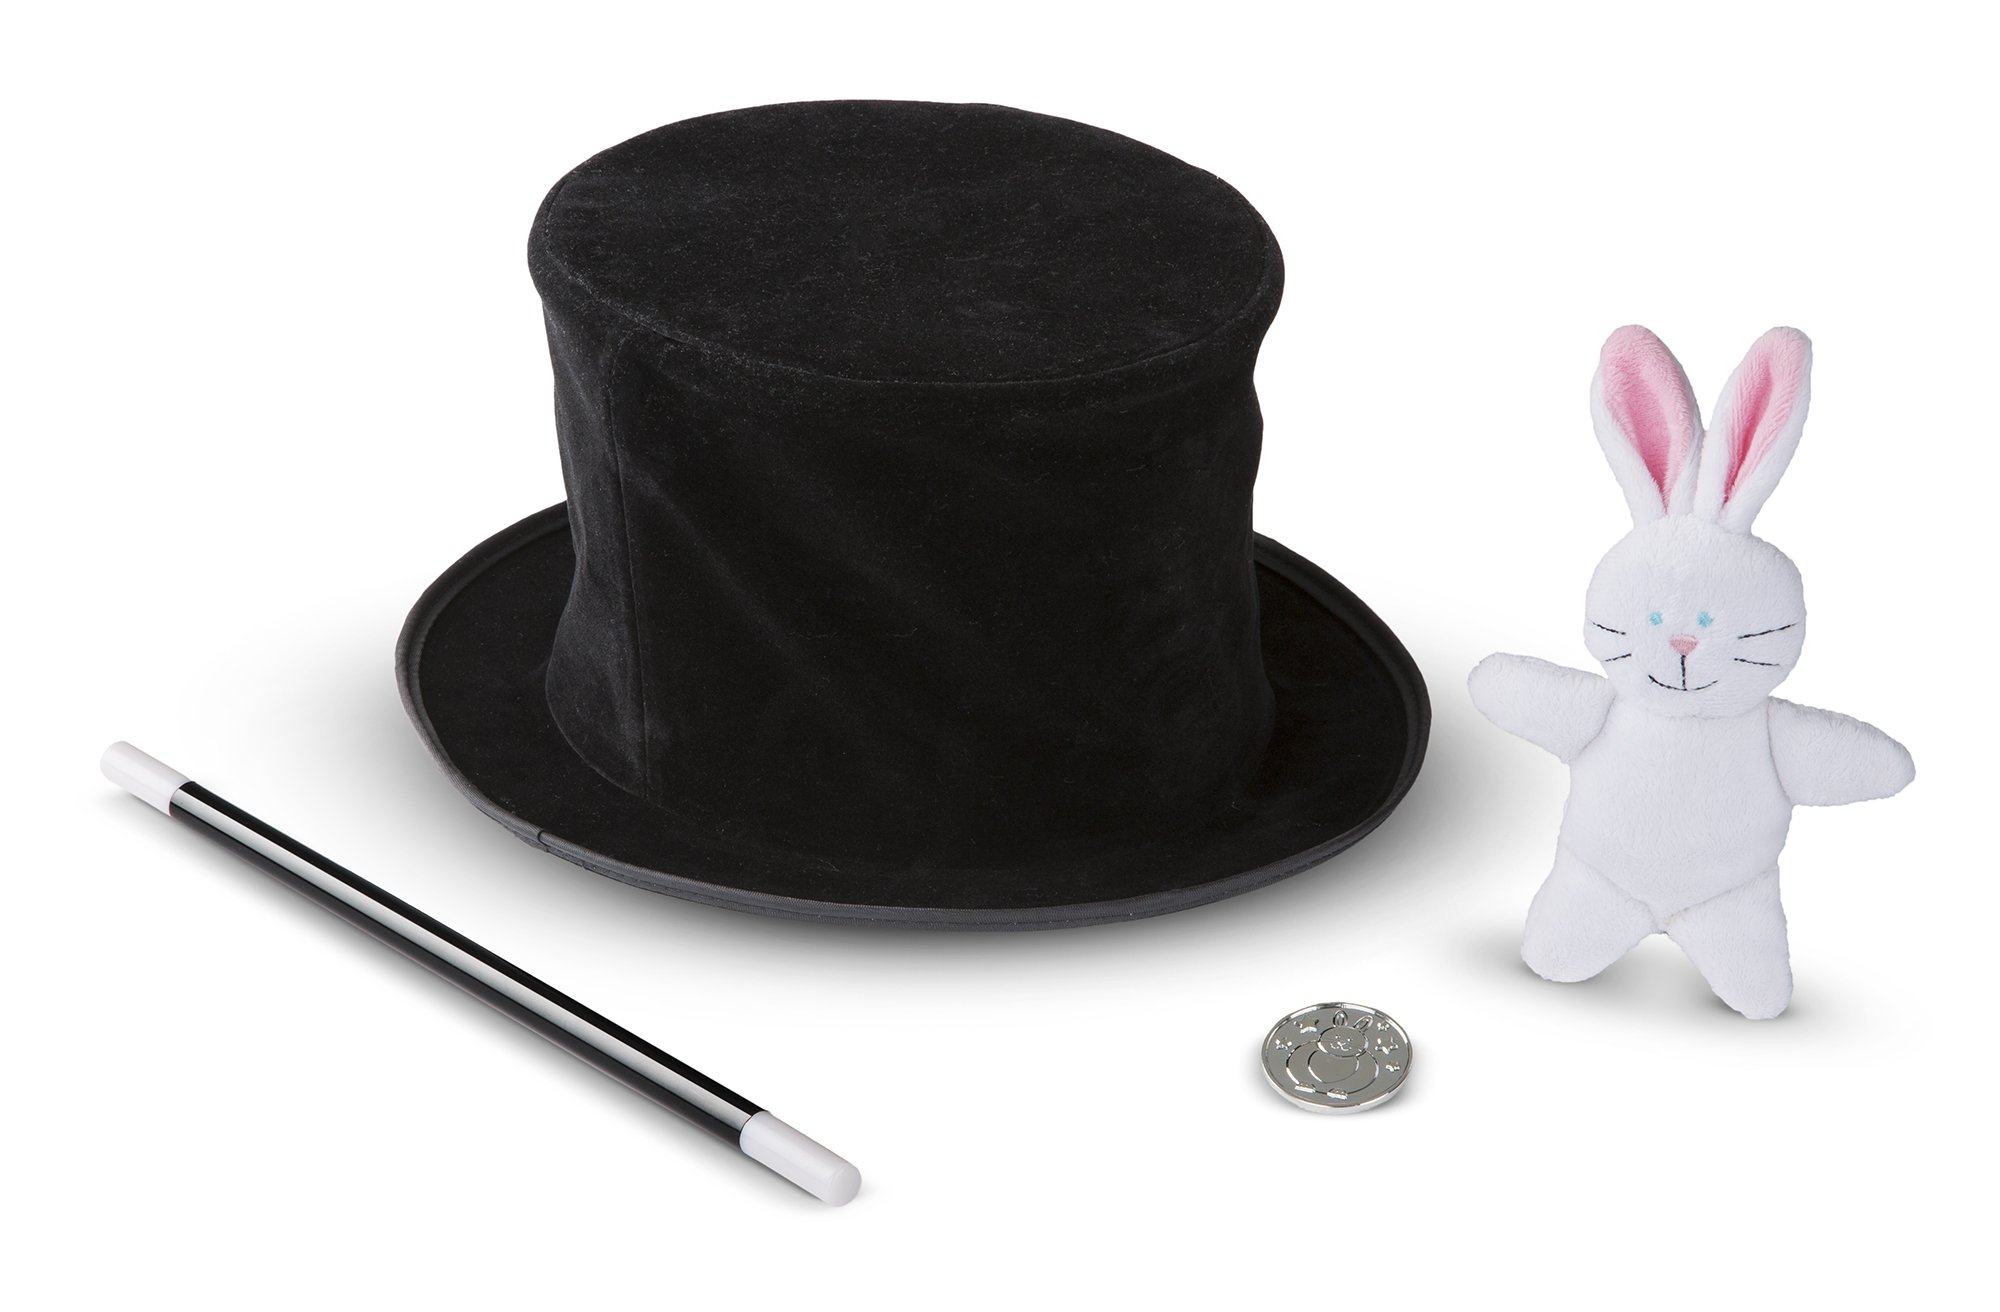 Melissa & Doug Magic in A Snap Magician's Pop-Up Magical Hat with Tricks